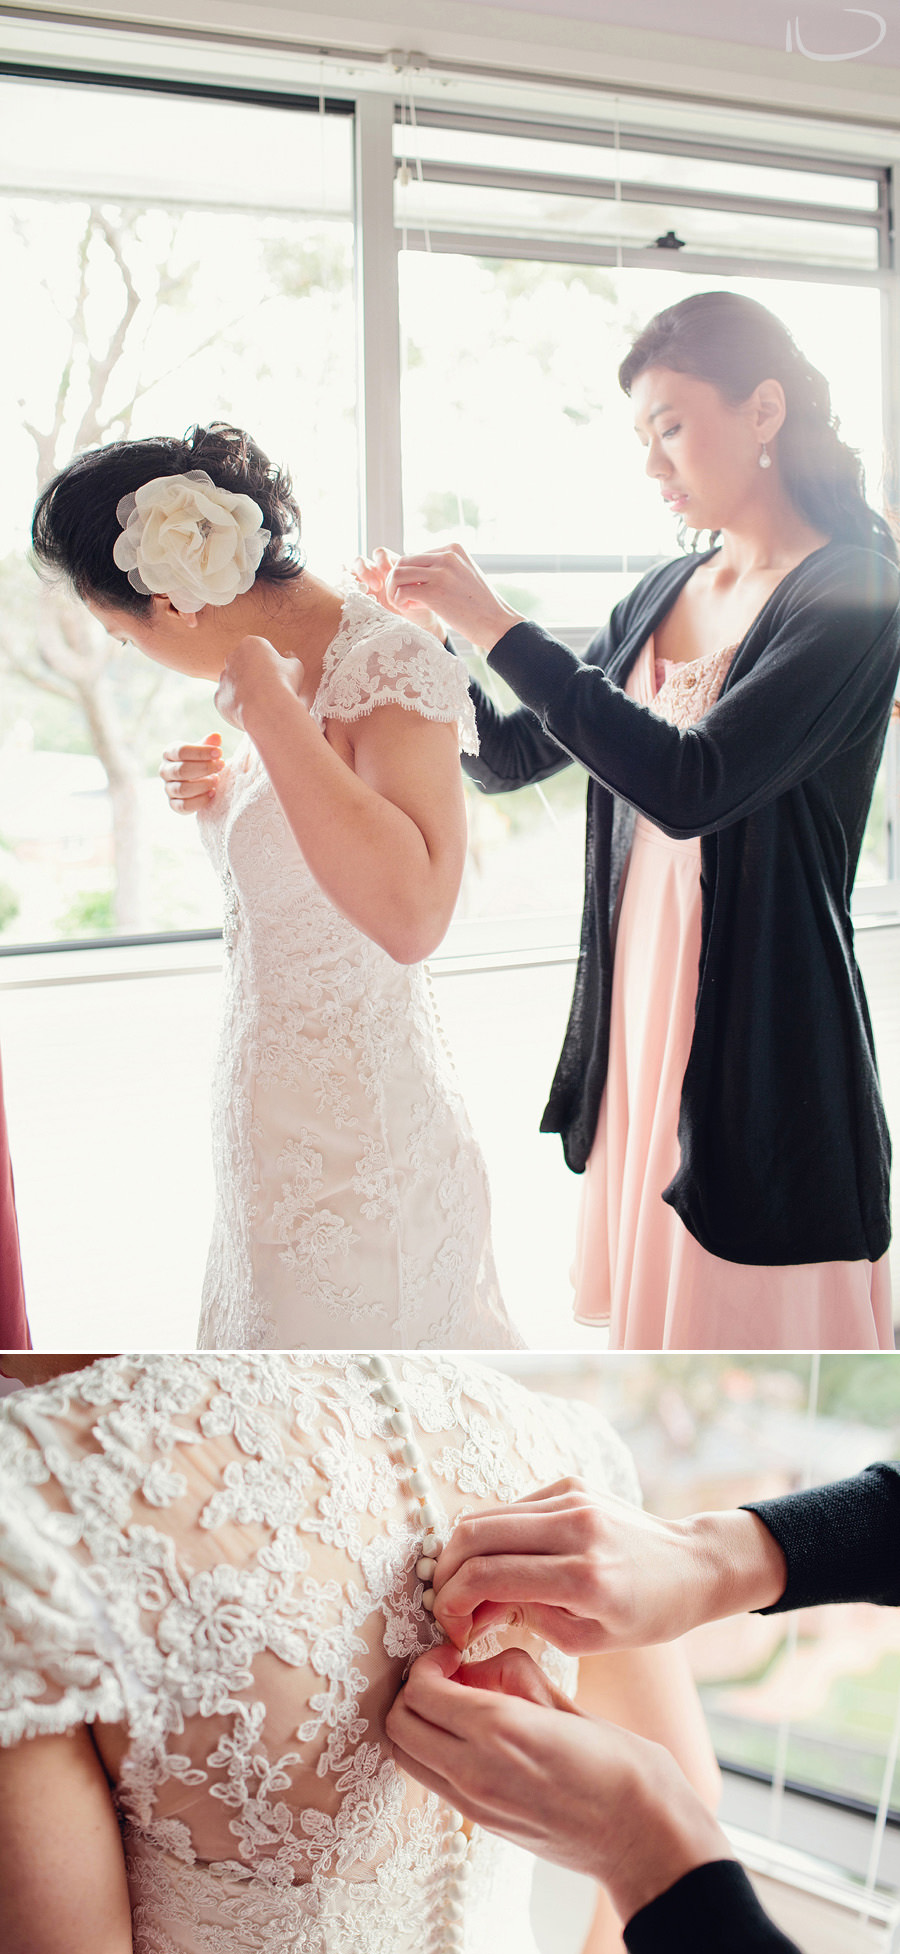 Modern Wedding Photographers: Bride getting dressed